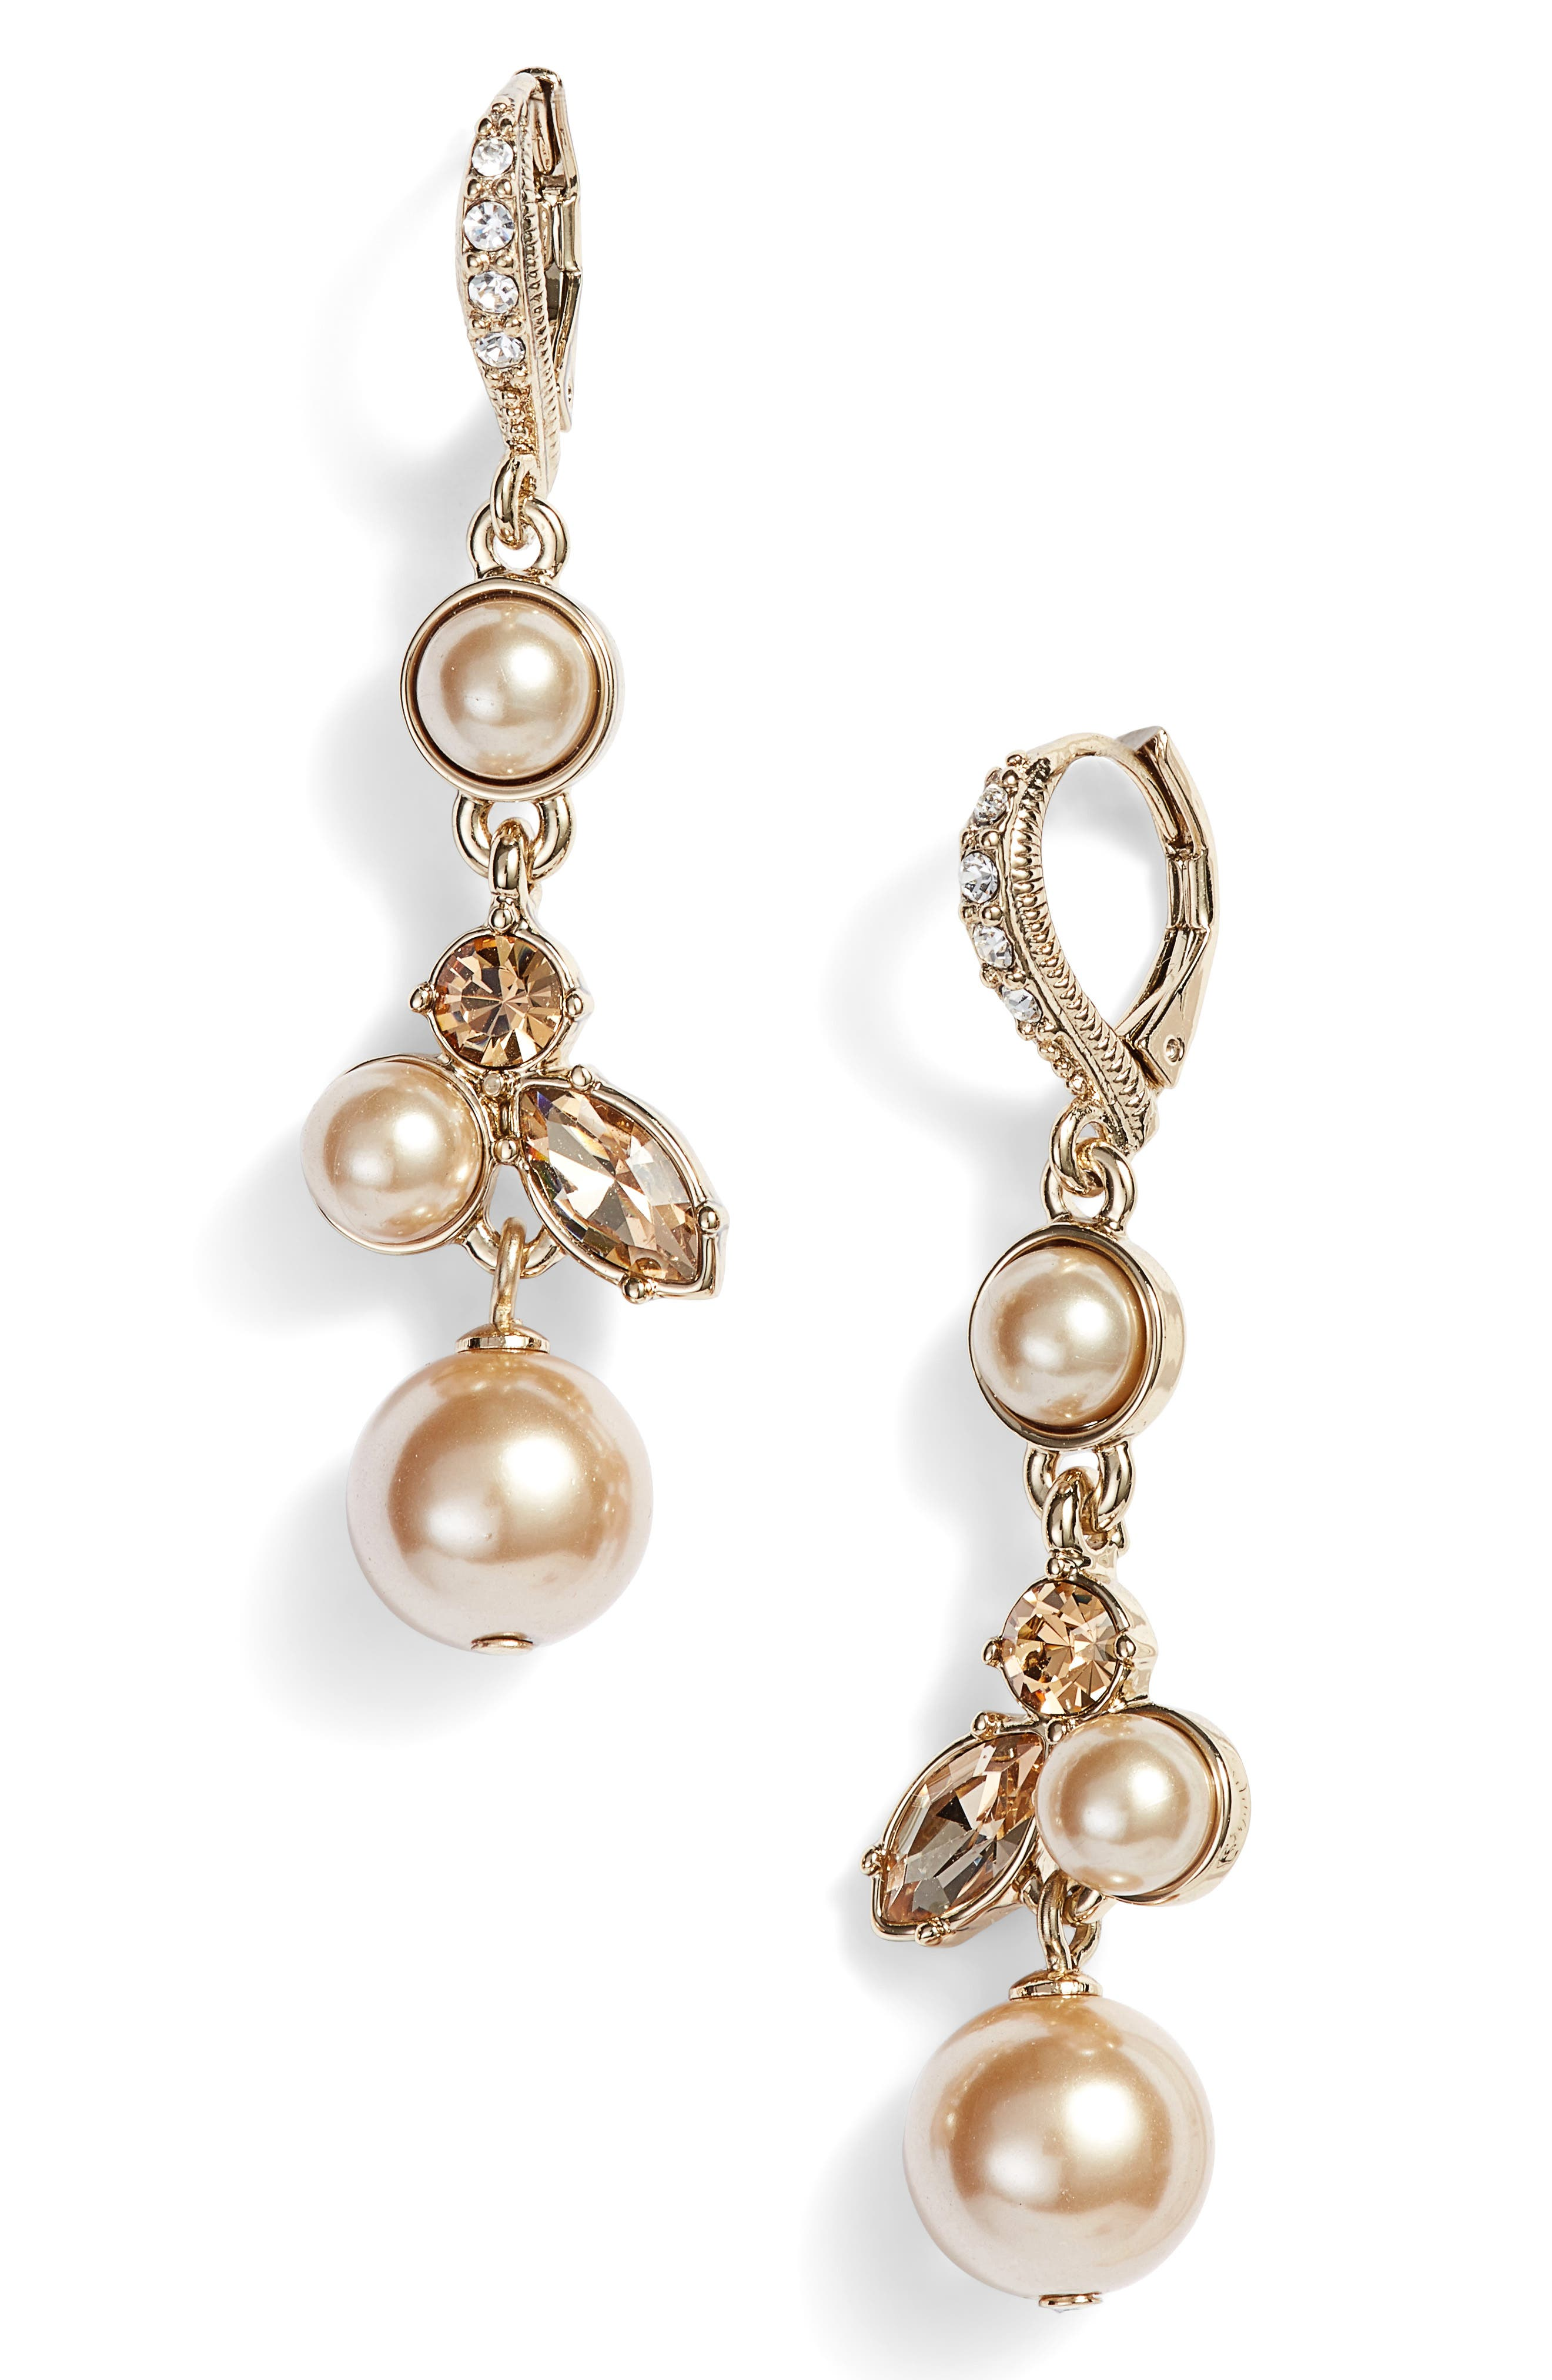 Imitation Pearl Drop Earrings,                             Main thumbnail 1, color,                             710